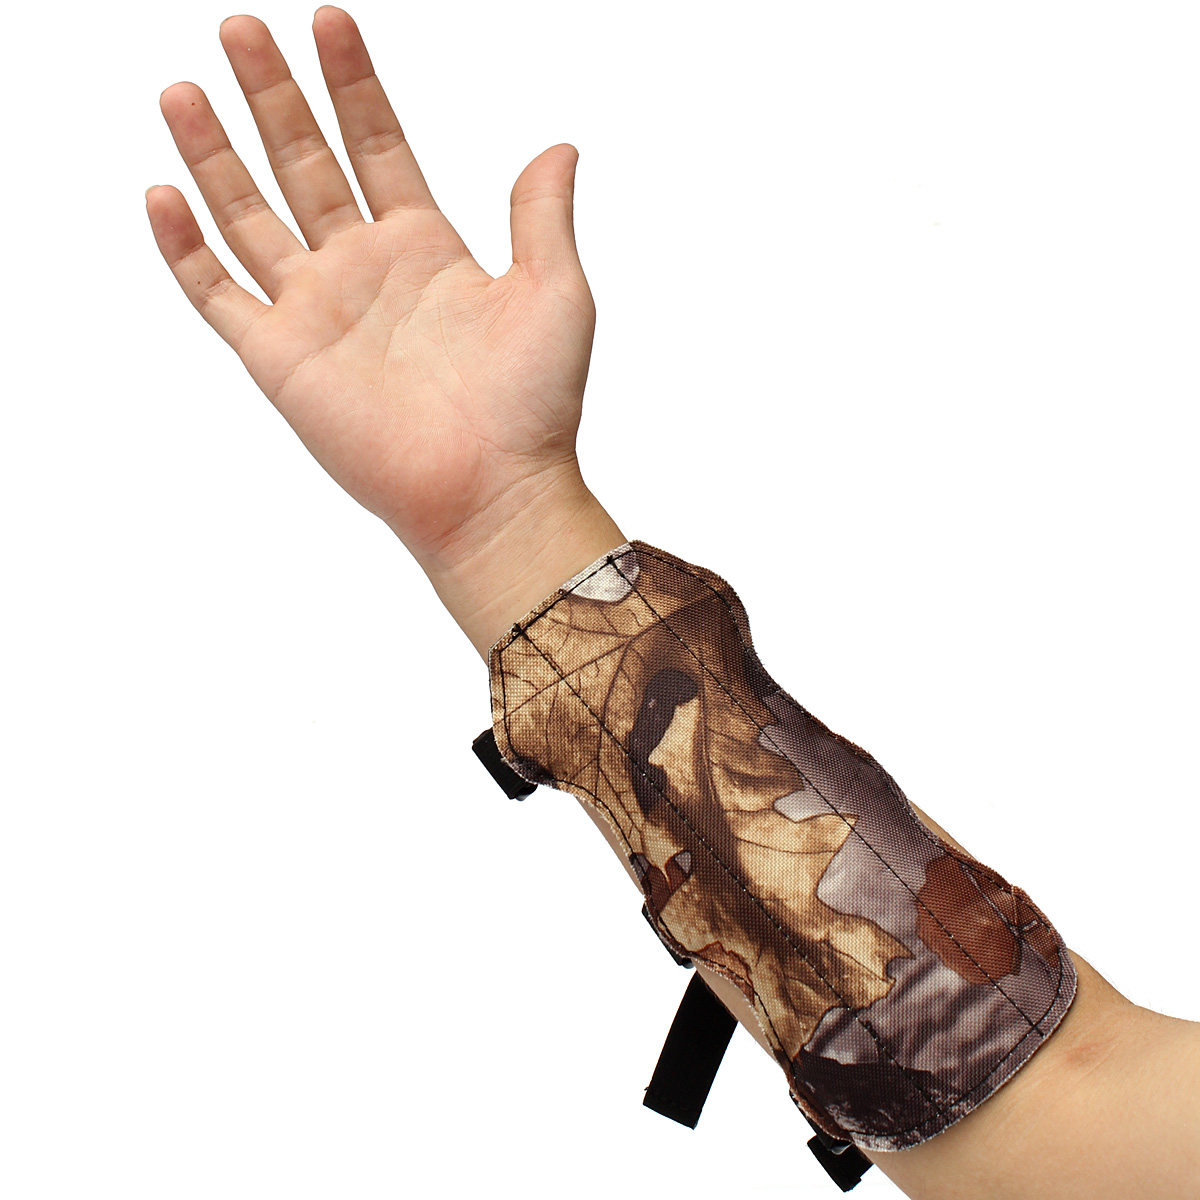 Shooting Archery Arm Guard 4 Straps Camouflage Hunting Protection Gear Leather